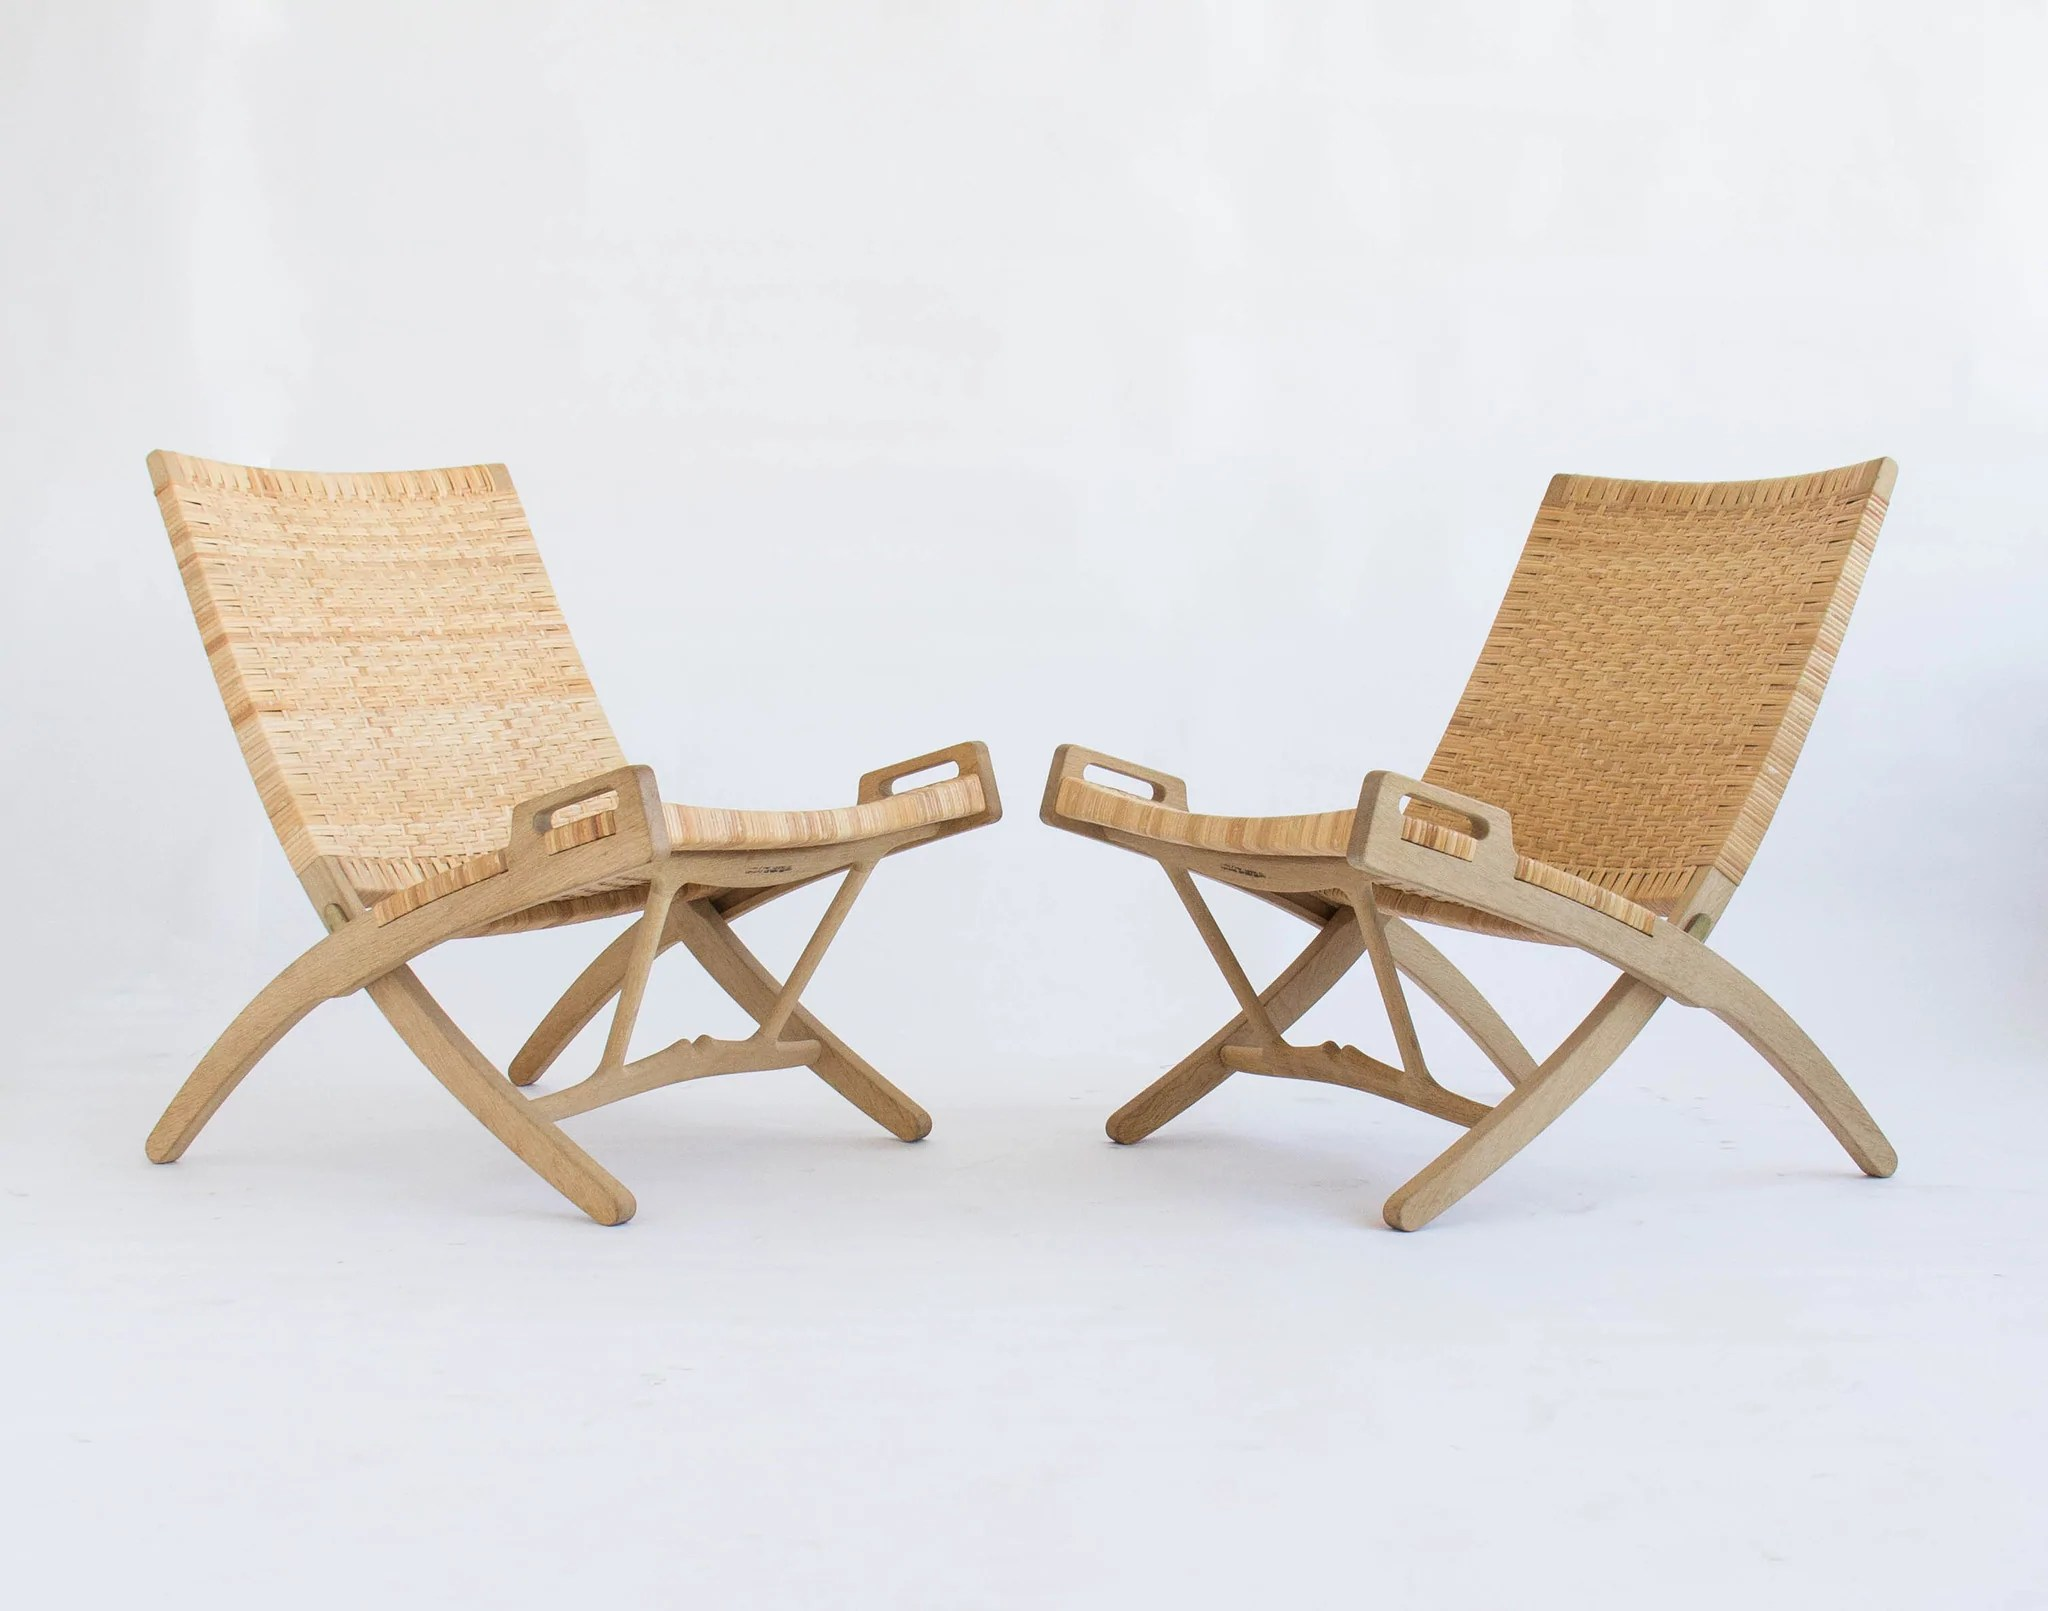 Hans Wegner Folding Chair Pair Of Oak And Cane Folding Lounge Chairs By Hans Wegner